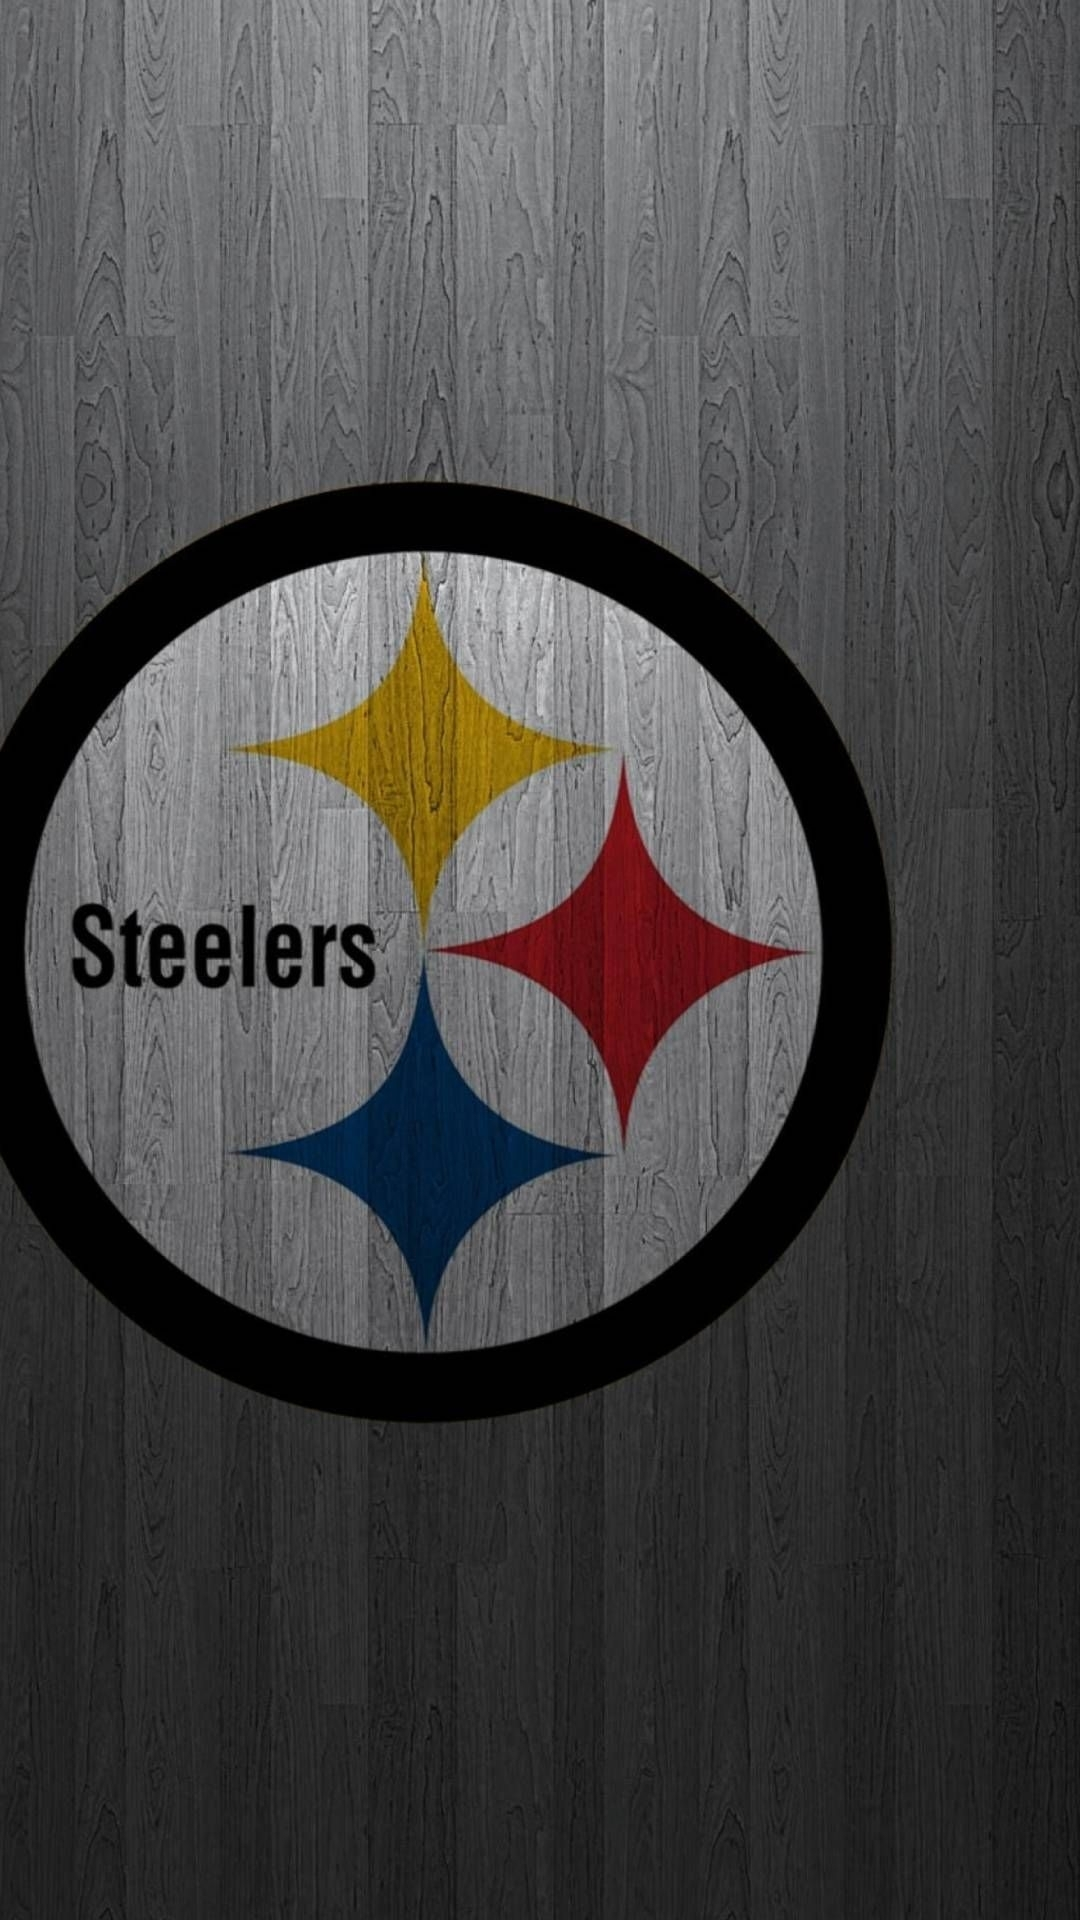 pinjulia on hd wallpapers | pinterest | pittsburgh steelers